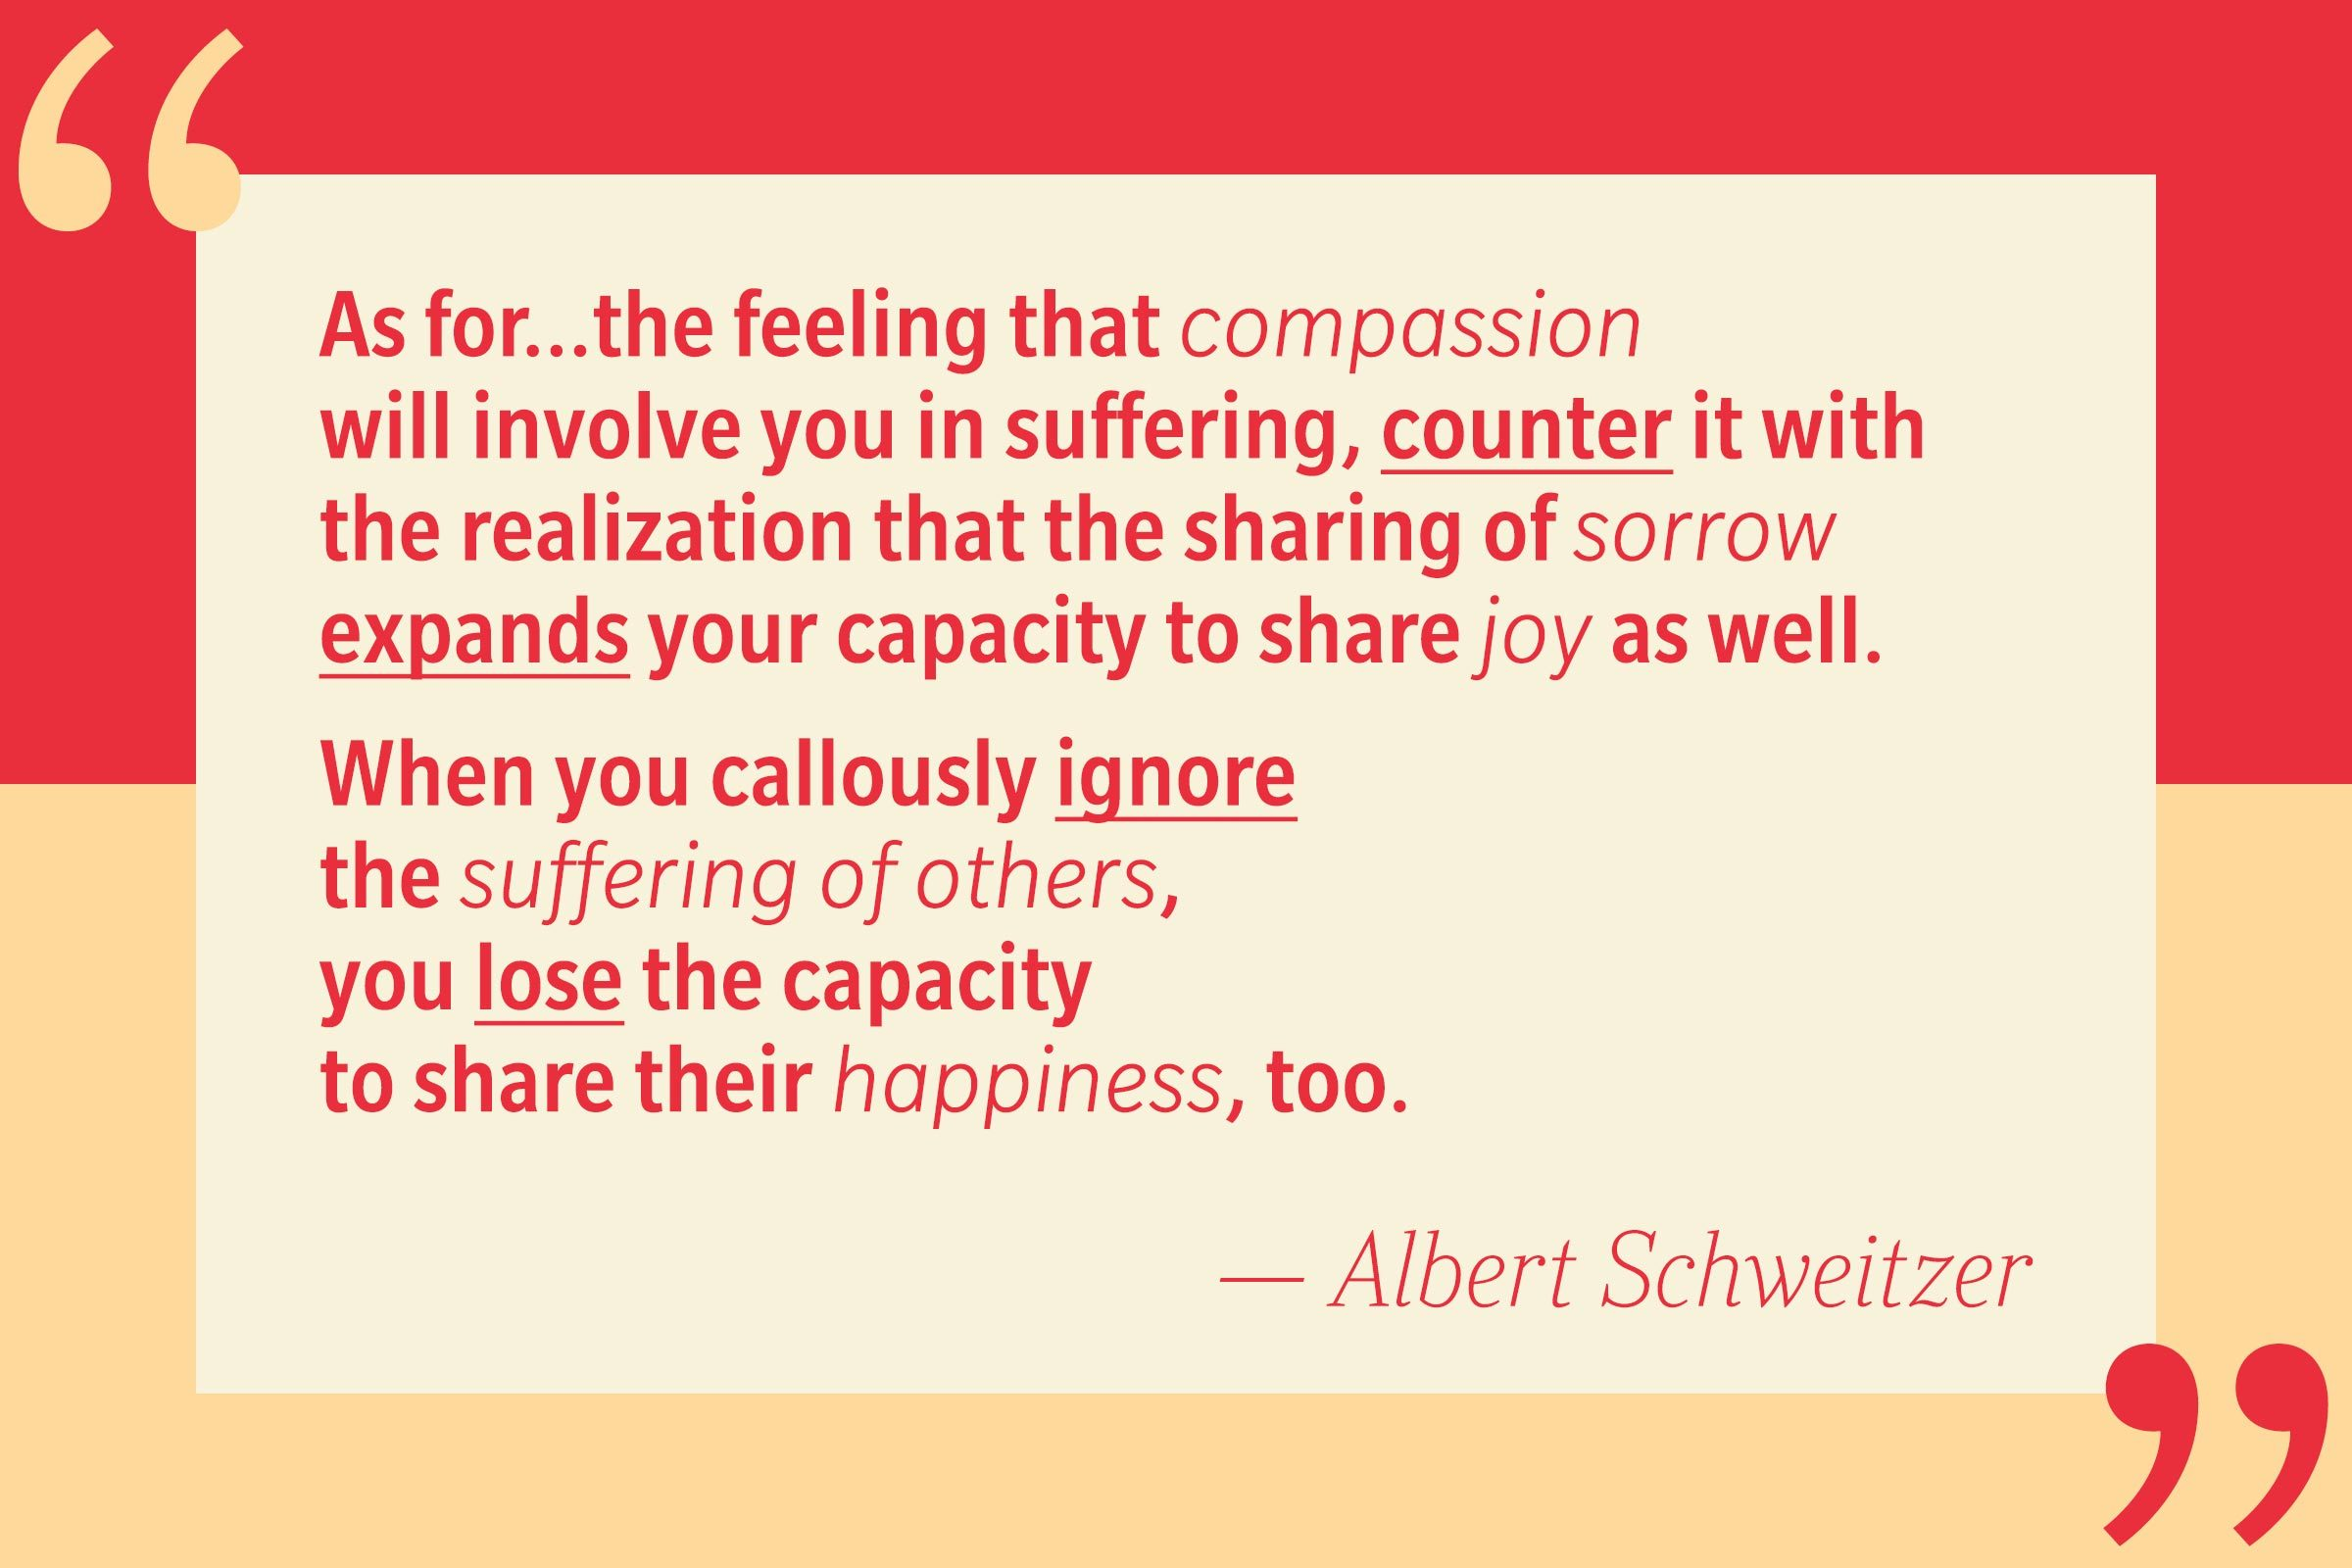 As for…the fear that compassion will involve you in suffering, counter it with the realization that the sharing of sorrow expands your capacity to share joy as well. When you callously ignore the suffering of others, you lose the capacity to share their happiness, too. — Albert Schweitzer